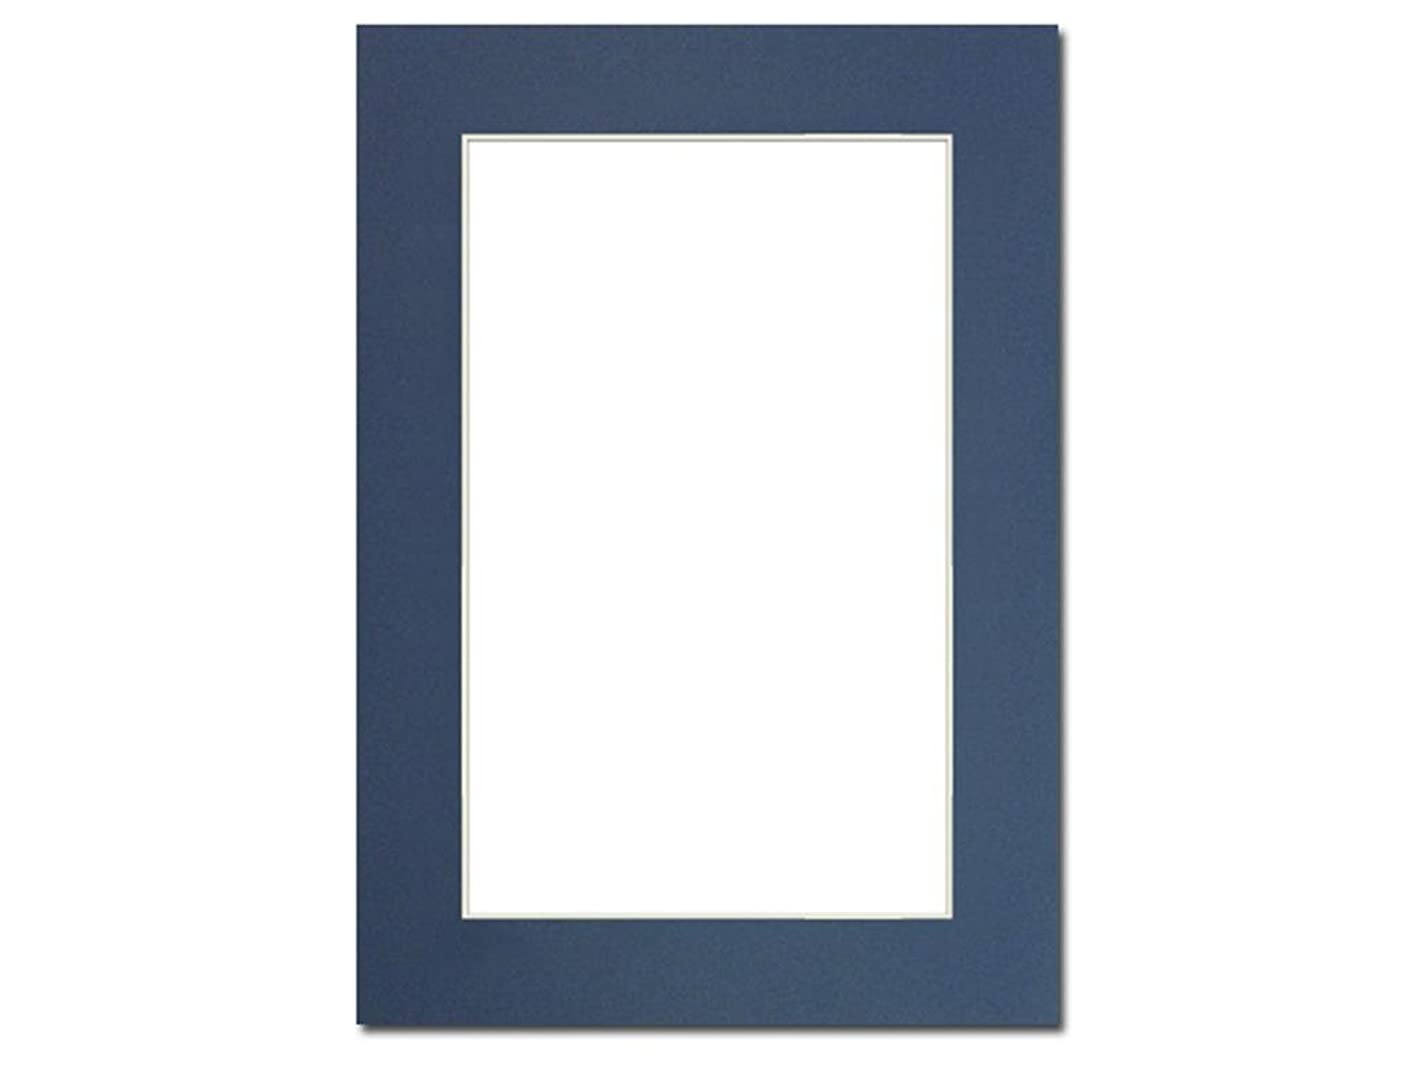 PA Framing, Photo Mat Board, 5 x 7 inches Frame for 4 x 6 inches Photo Art Size - Cream Core/Bay Blue